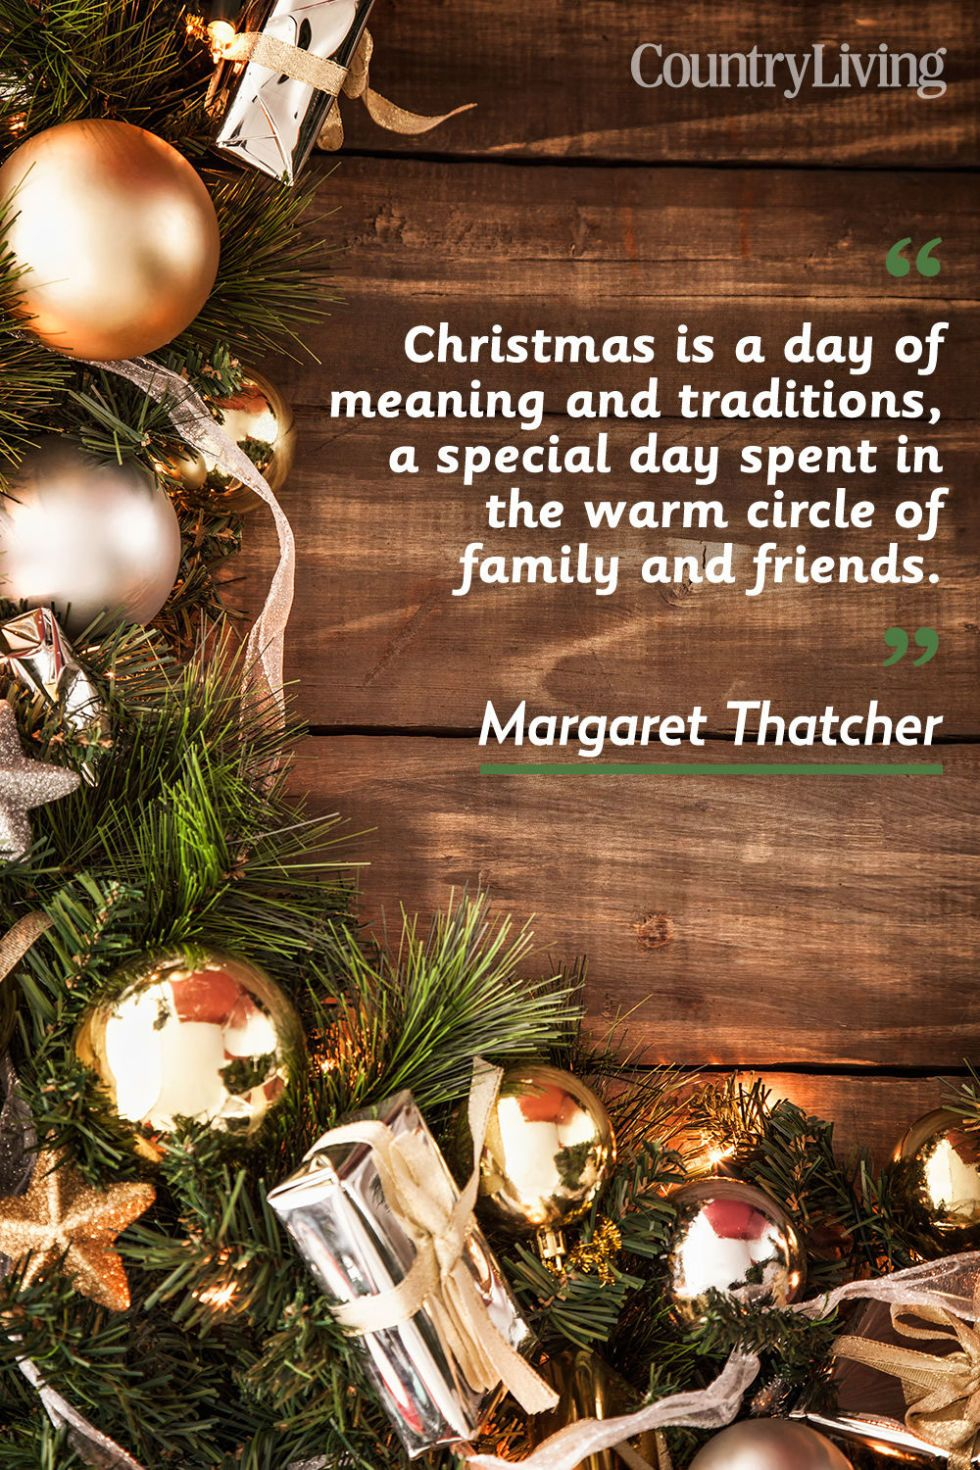 75 Christmas Quotes That Capture the Spirit of the Holiday